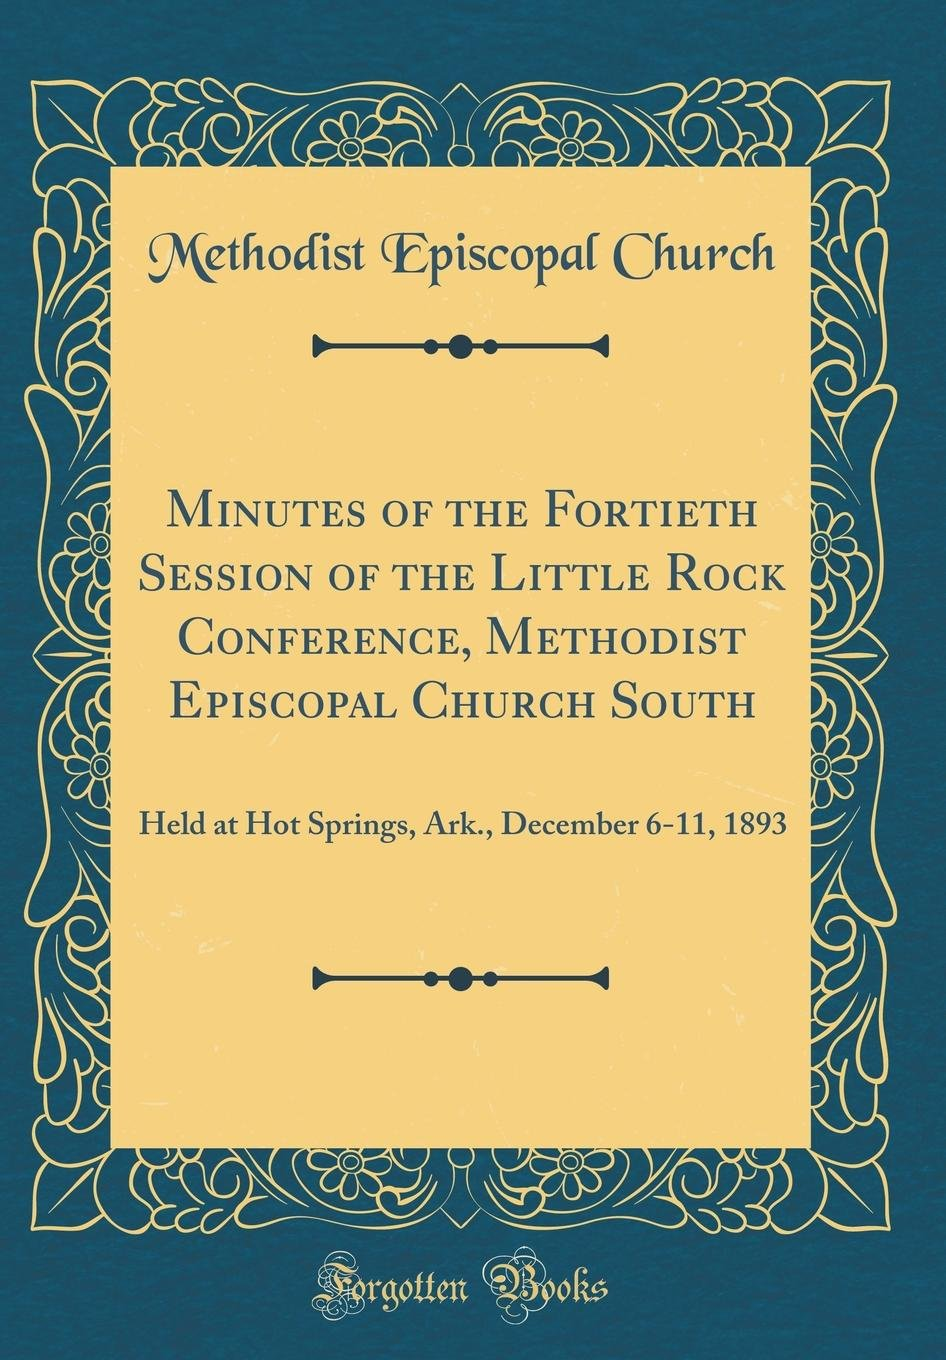 Minutes of the Fortieth Session of the Little Rock Conference, Methodist Episcopal Church South: Held at Hot Springs, Ark., December 6-11, 1893 (Classic Reprint) PDF